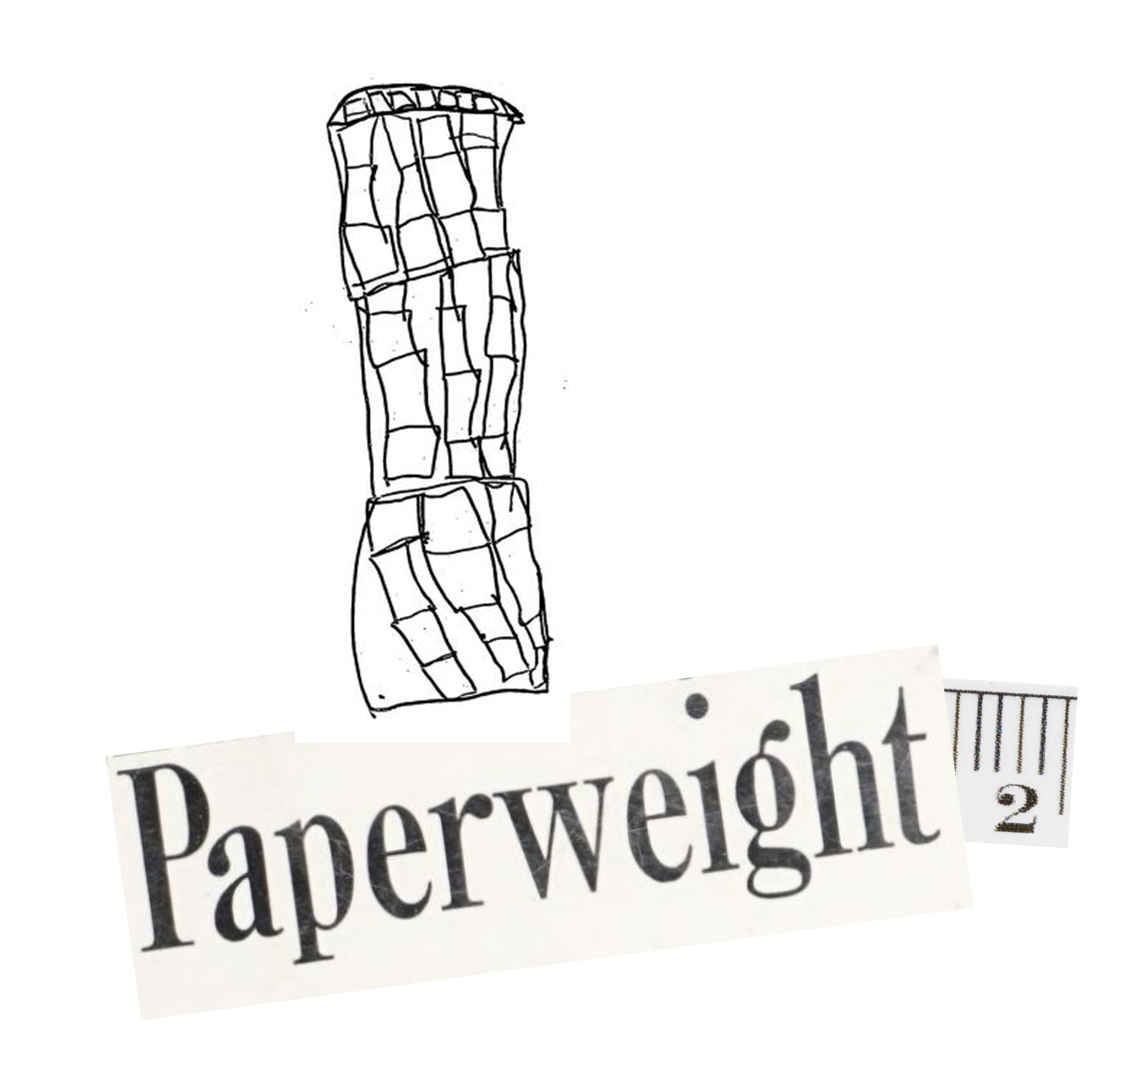 Late Works: Paperweight 2 logo, which contains the word Paperweight on one piece of paper, a 2 from a ruler on another, and an abstract tower-like pen drawing on a third.